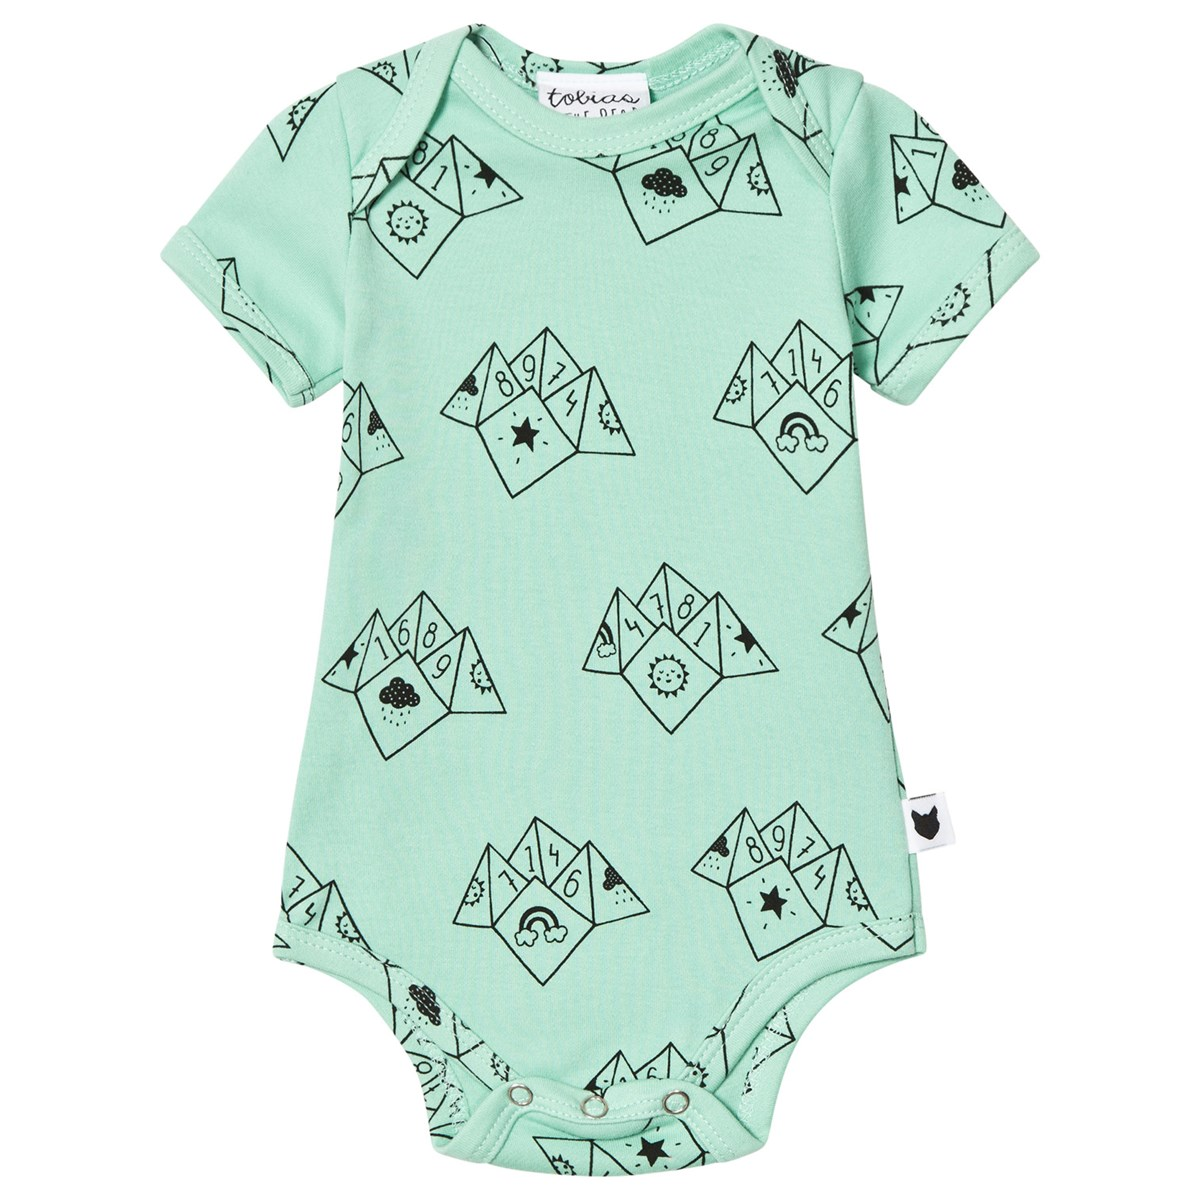 Baby Teller Tobias The Bear Apple Fortune Teller Print Baby Body